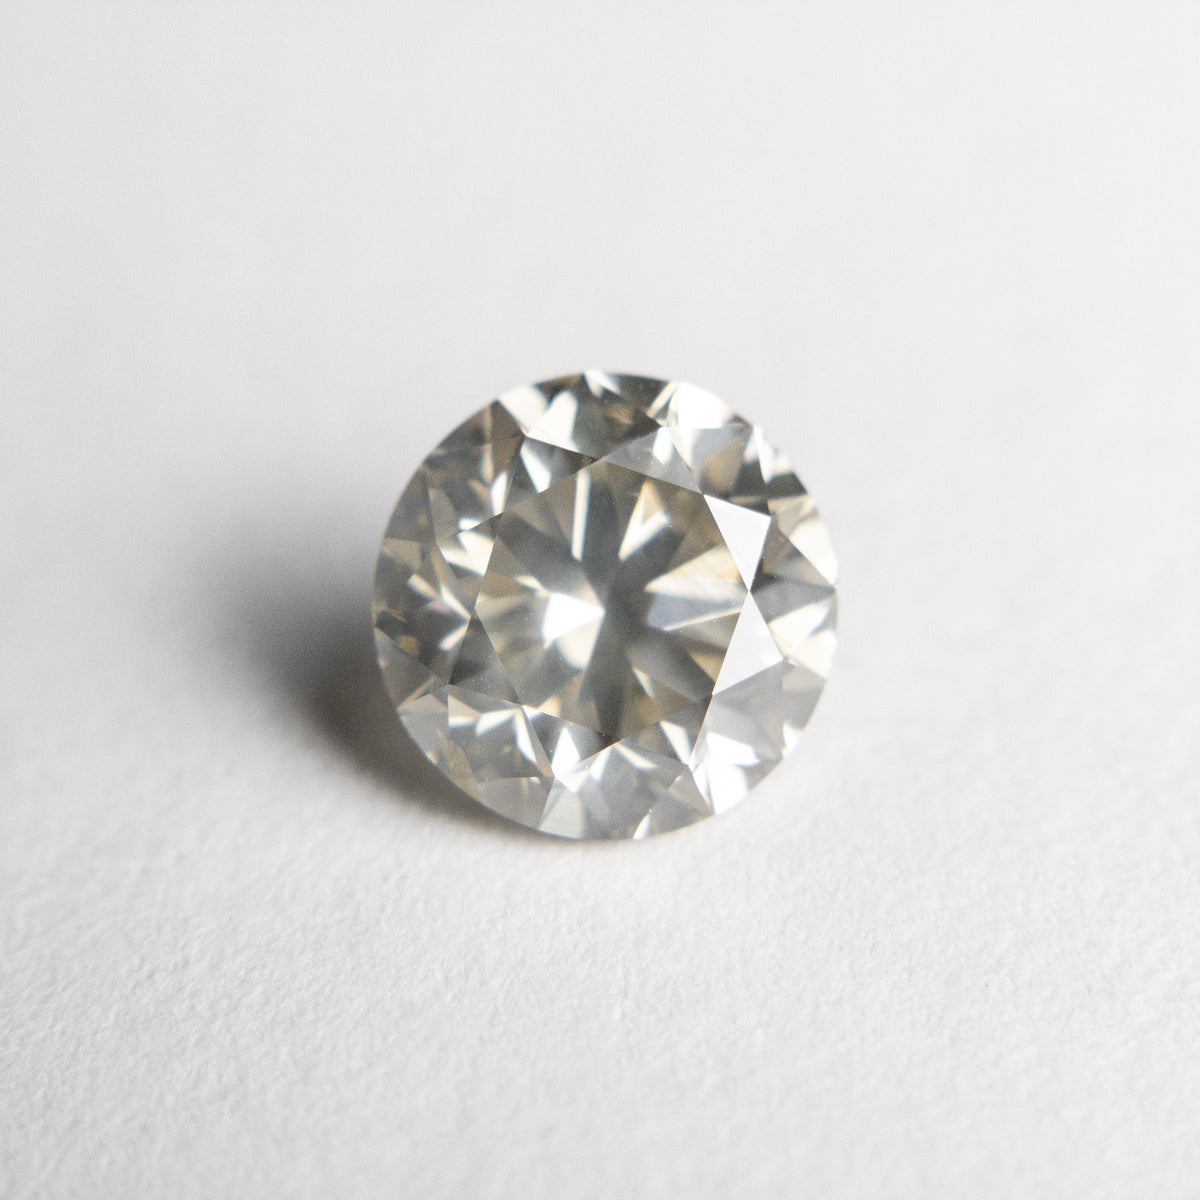 1.70ct 7.40x7.33x4.80mm SI2+ Round Brilliant 18479-01